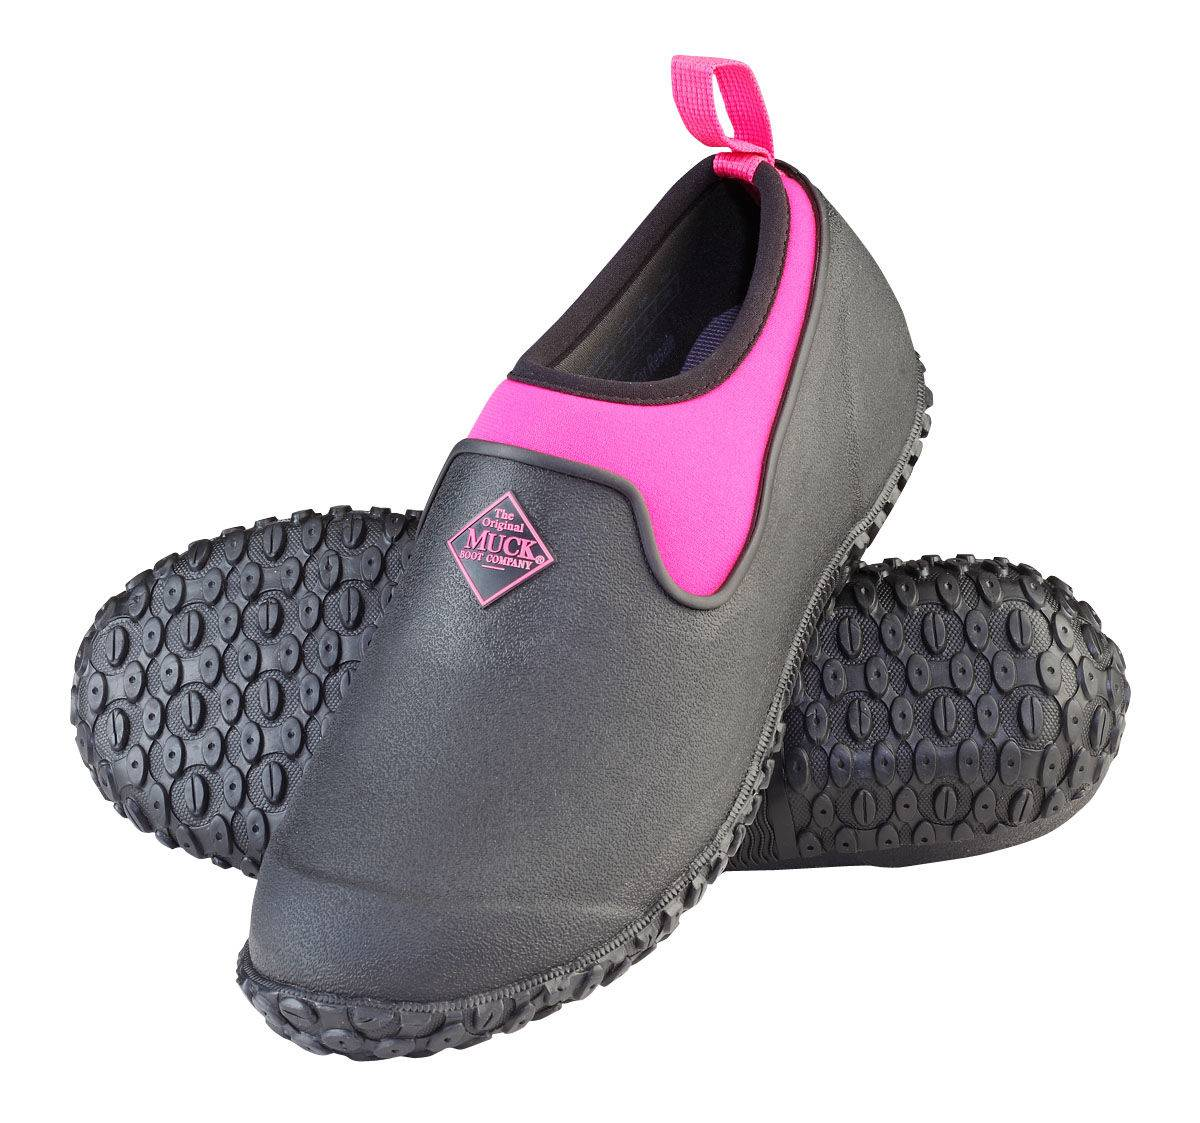 Muck Boots Ladies Muckster II Low - Black/Pink